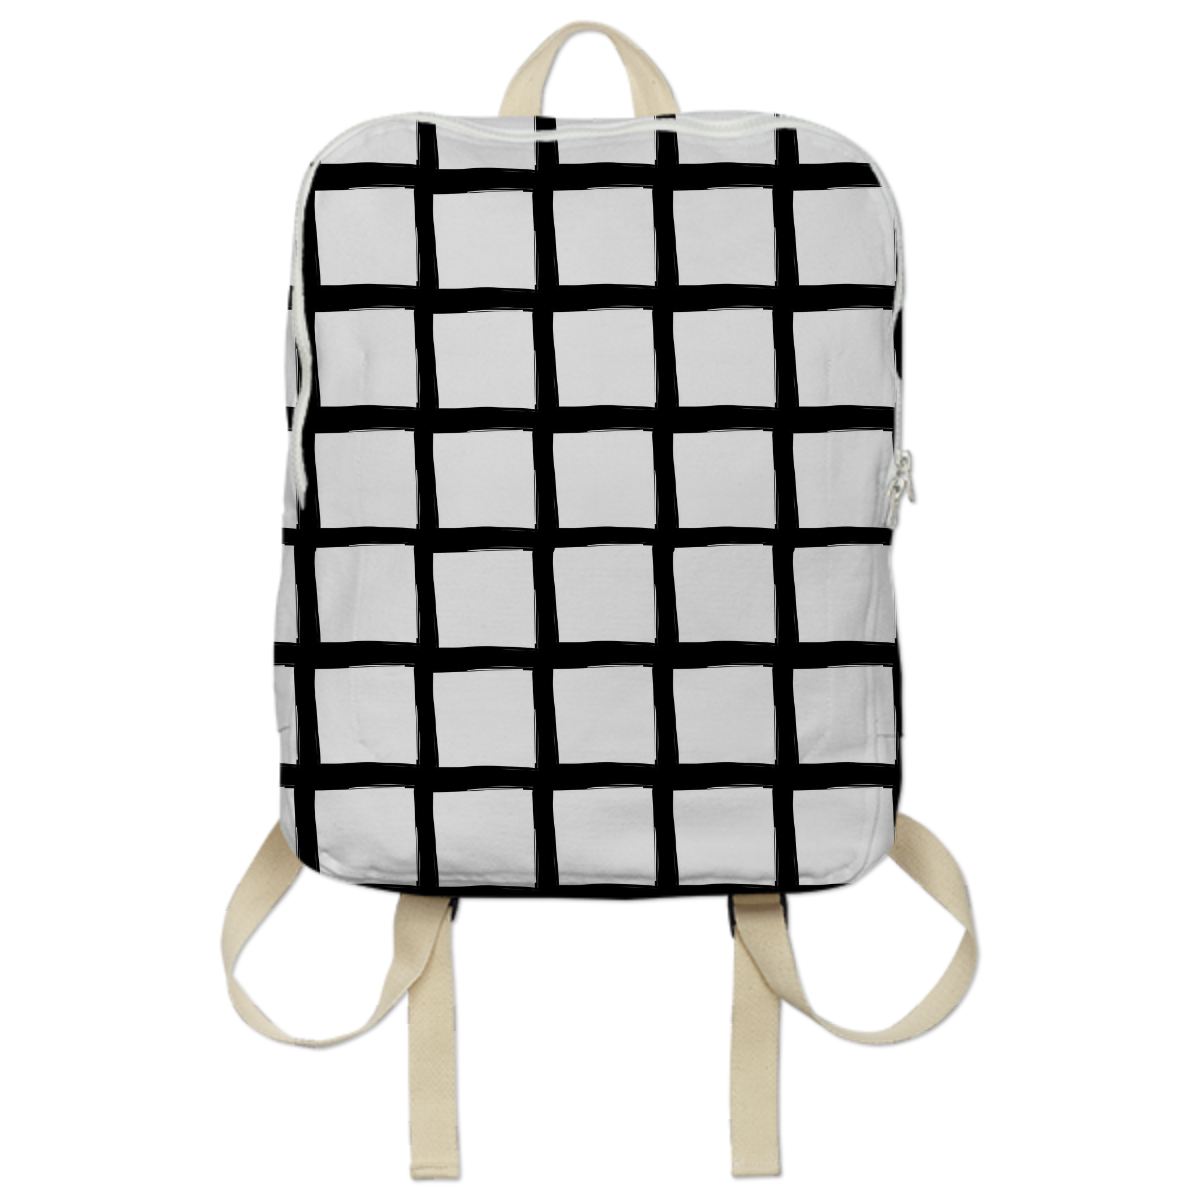 Shop Black And White Grid Bookbag Backpack By PENCIL ME IN